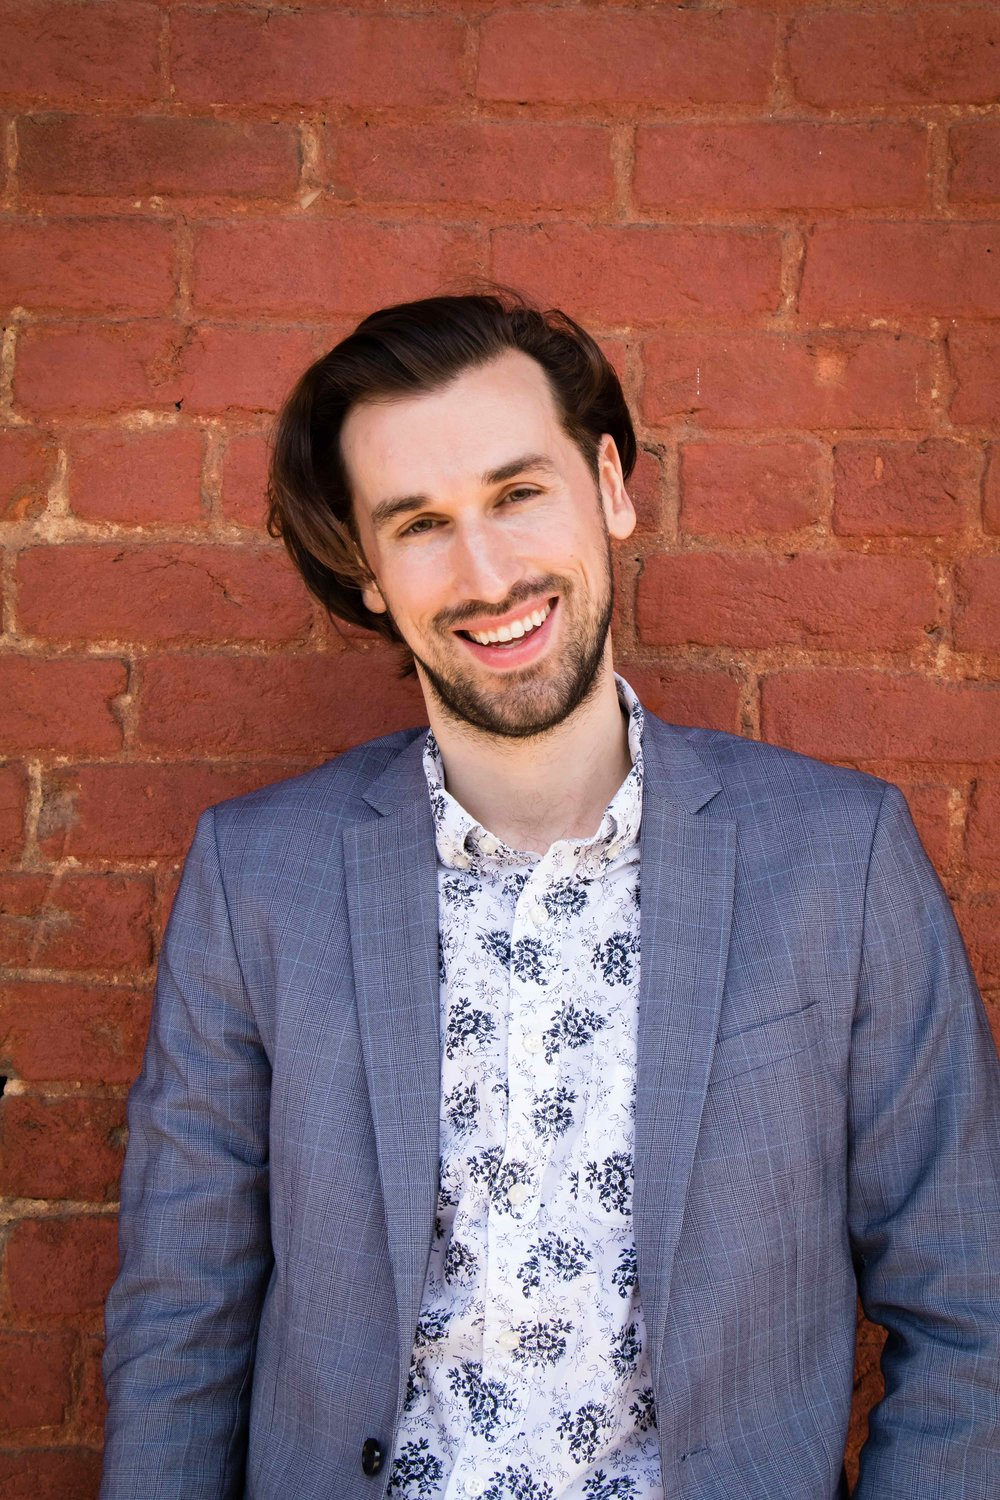 Henry Gordon-Smith, Founder & Managing Director  Henry helps clients identify and focus their goals and prepares consulting proposals. Henry also manages the entire Agritecture Consulting team. He is an acknowledged global thought leader in the emerging vertical farming industry. In 2011, he started the blog Agritecture.com and in 2014 he started Blue Planet Consulting (now Agritecture Consulting) to provide expert guidance on planning and launching urban agriculture projects. Henry grew up around the world and has a unique capacity to develop creative solutions to local and global problems. He earned his BA in Political Science from UBC, a certificate in Food Security from Ryerson University and an MSc in Sustainability Management from Columbia University.    LinkedIn